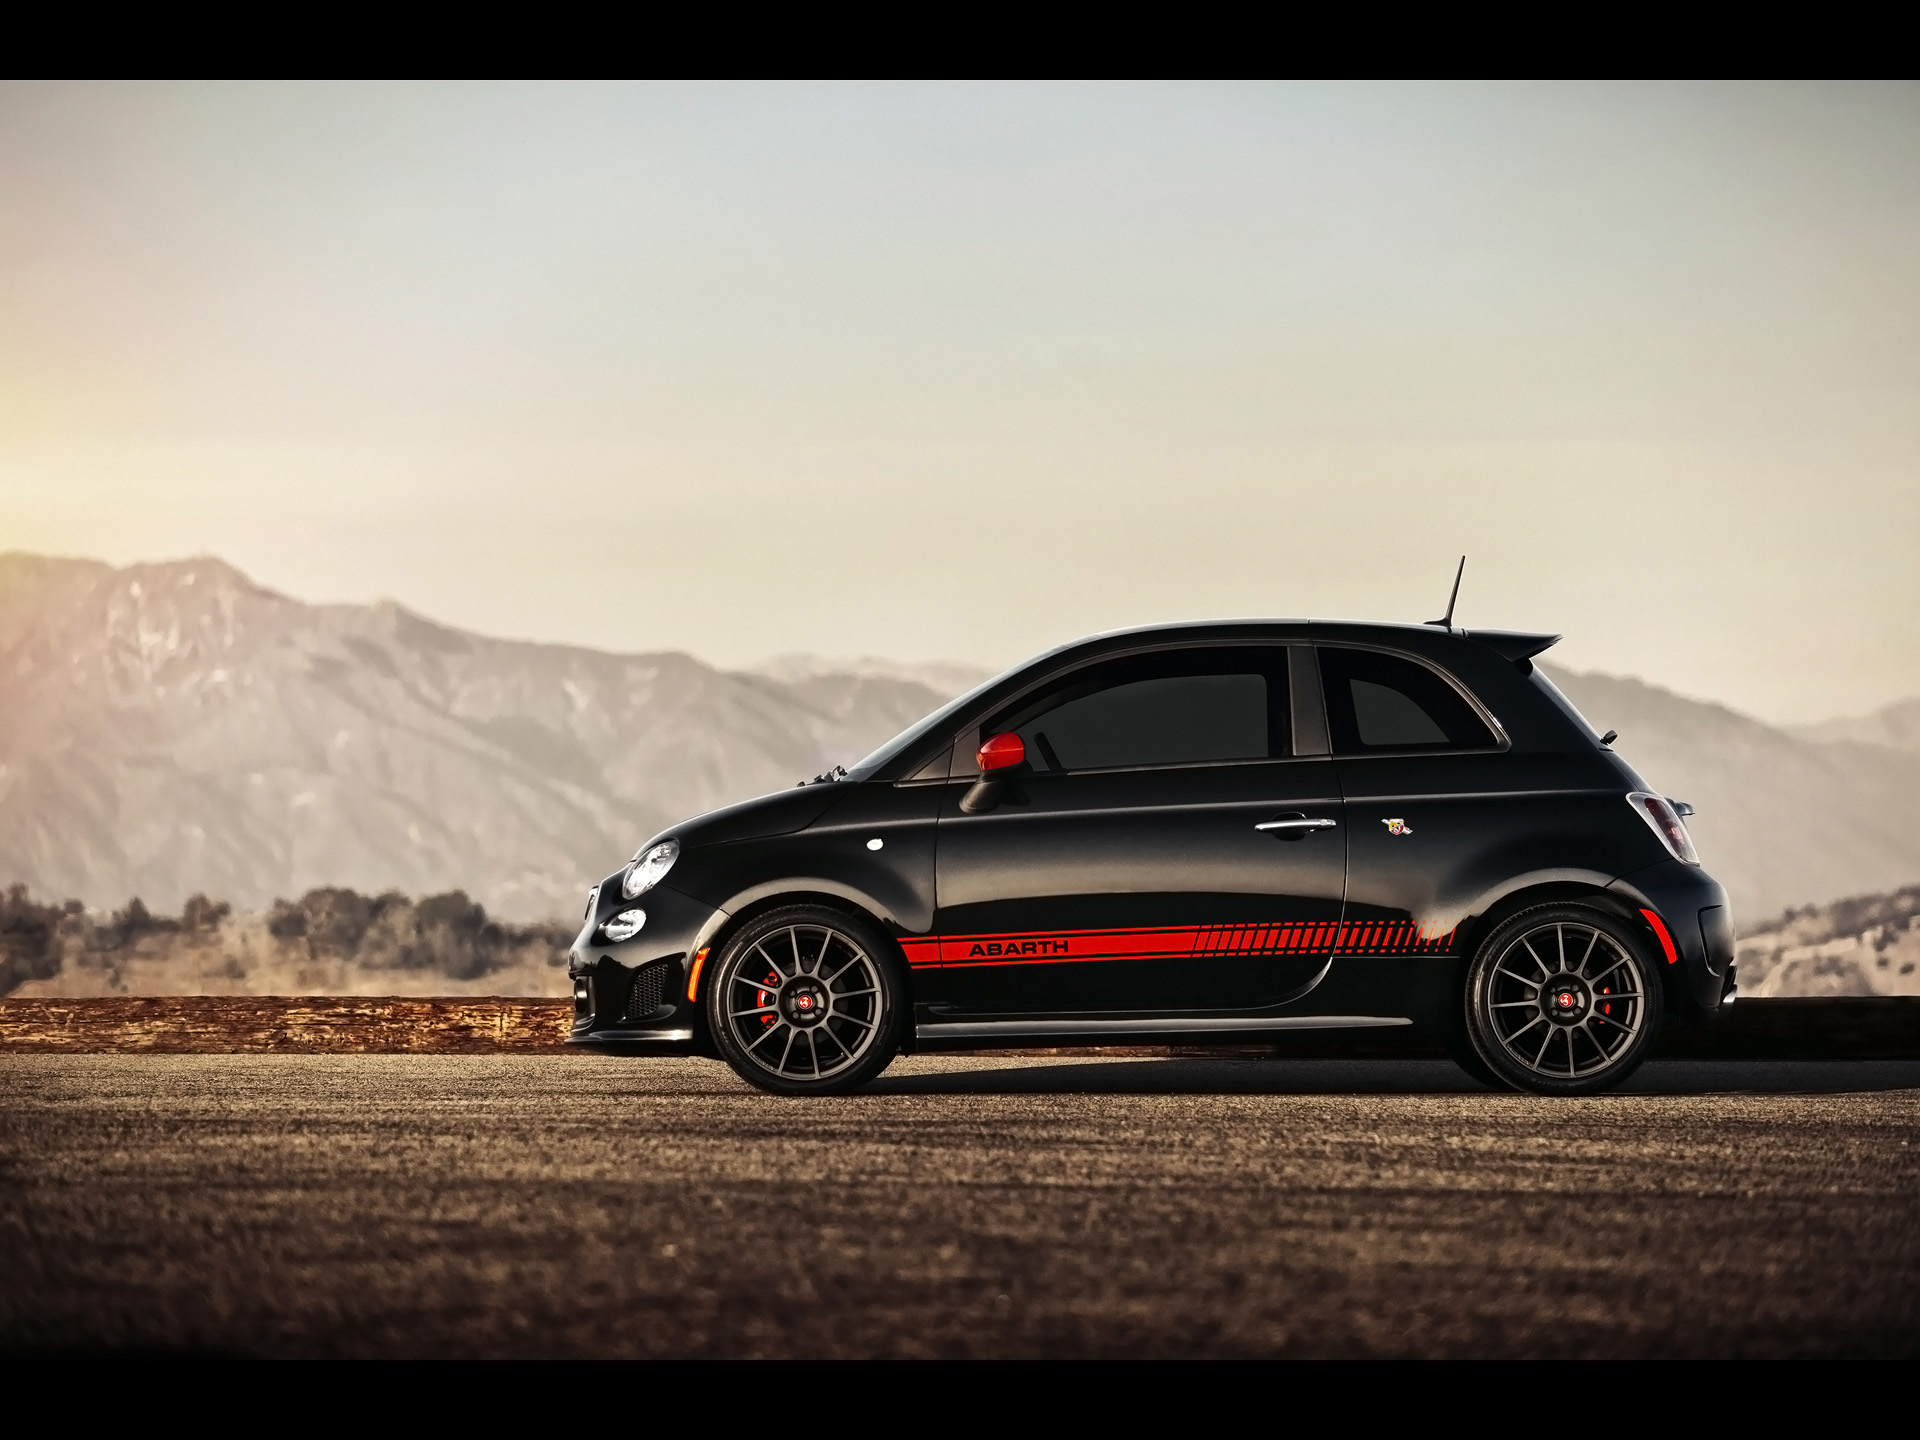 Image for Awesome Fiat 500 Abarth Architecture wallpapers 2015